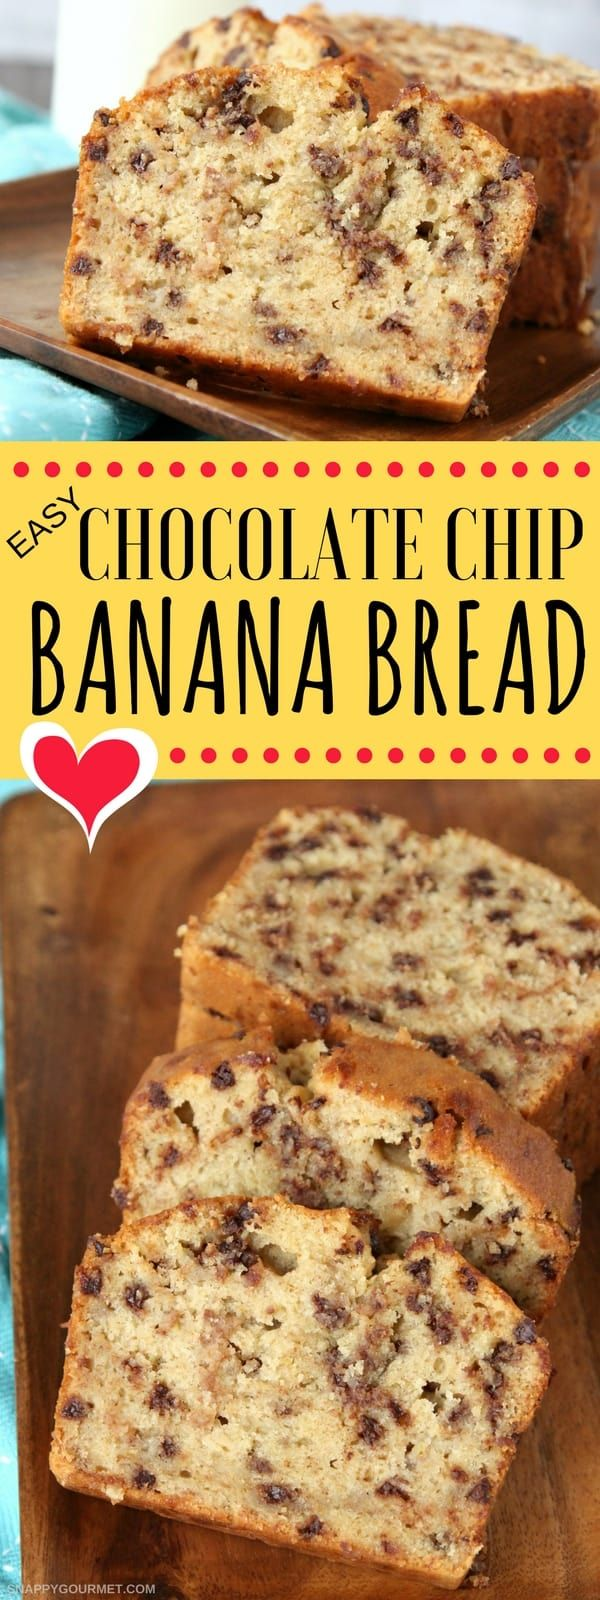 Easy Chocolate Chip Banana Bread recipe, quick one bowl homemade banana bread. Makes the best moist banana bread! #BananaBread #Bread #ChocolateChip #SnappyGourmet via @snappygourmet